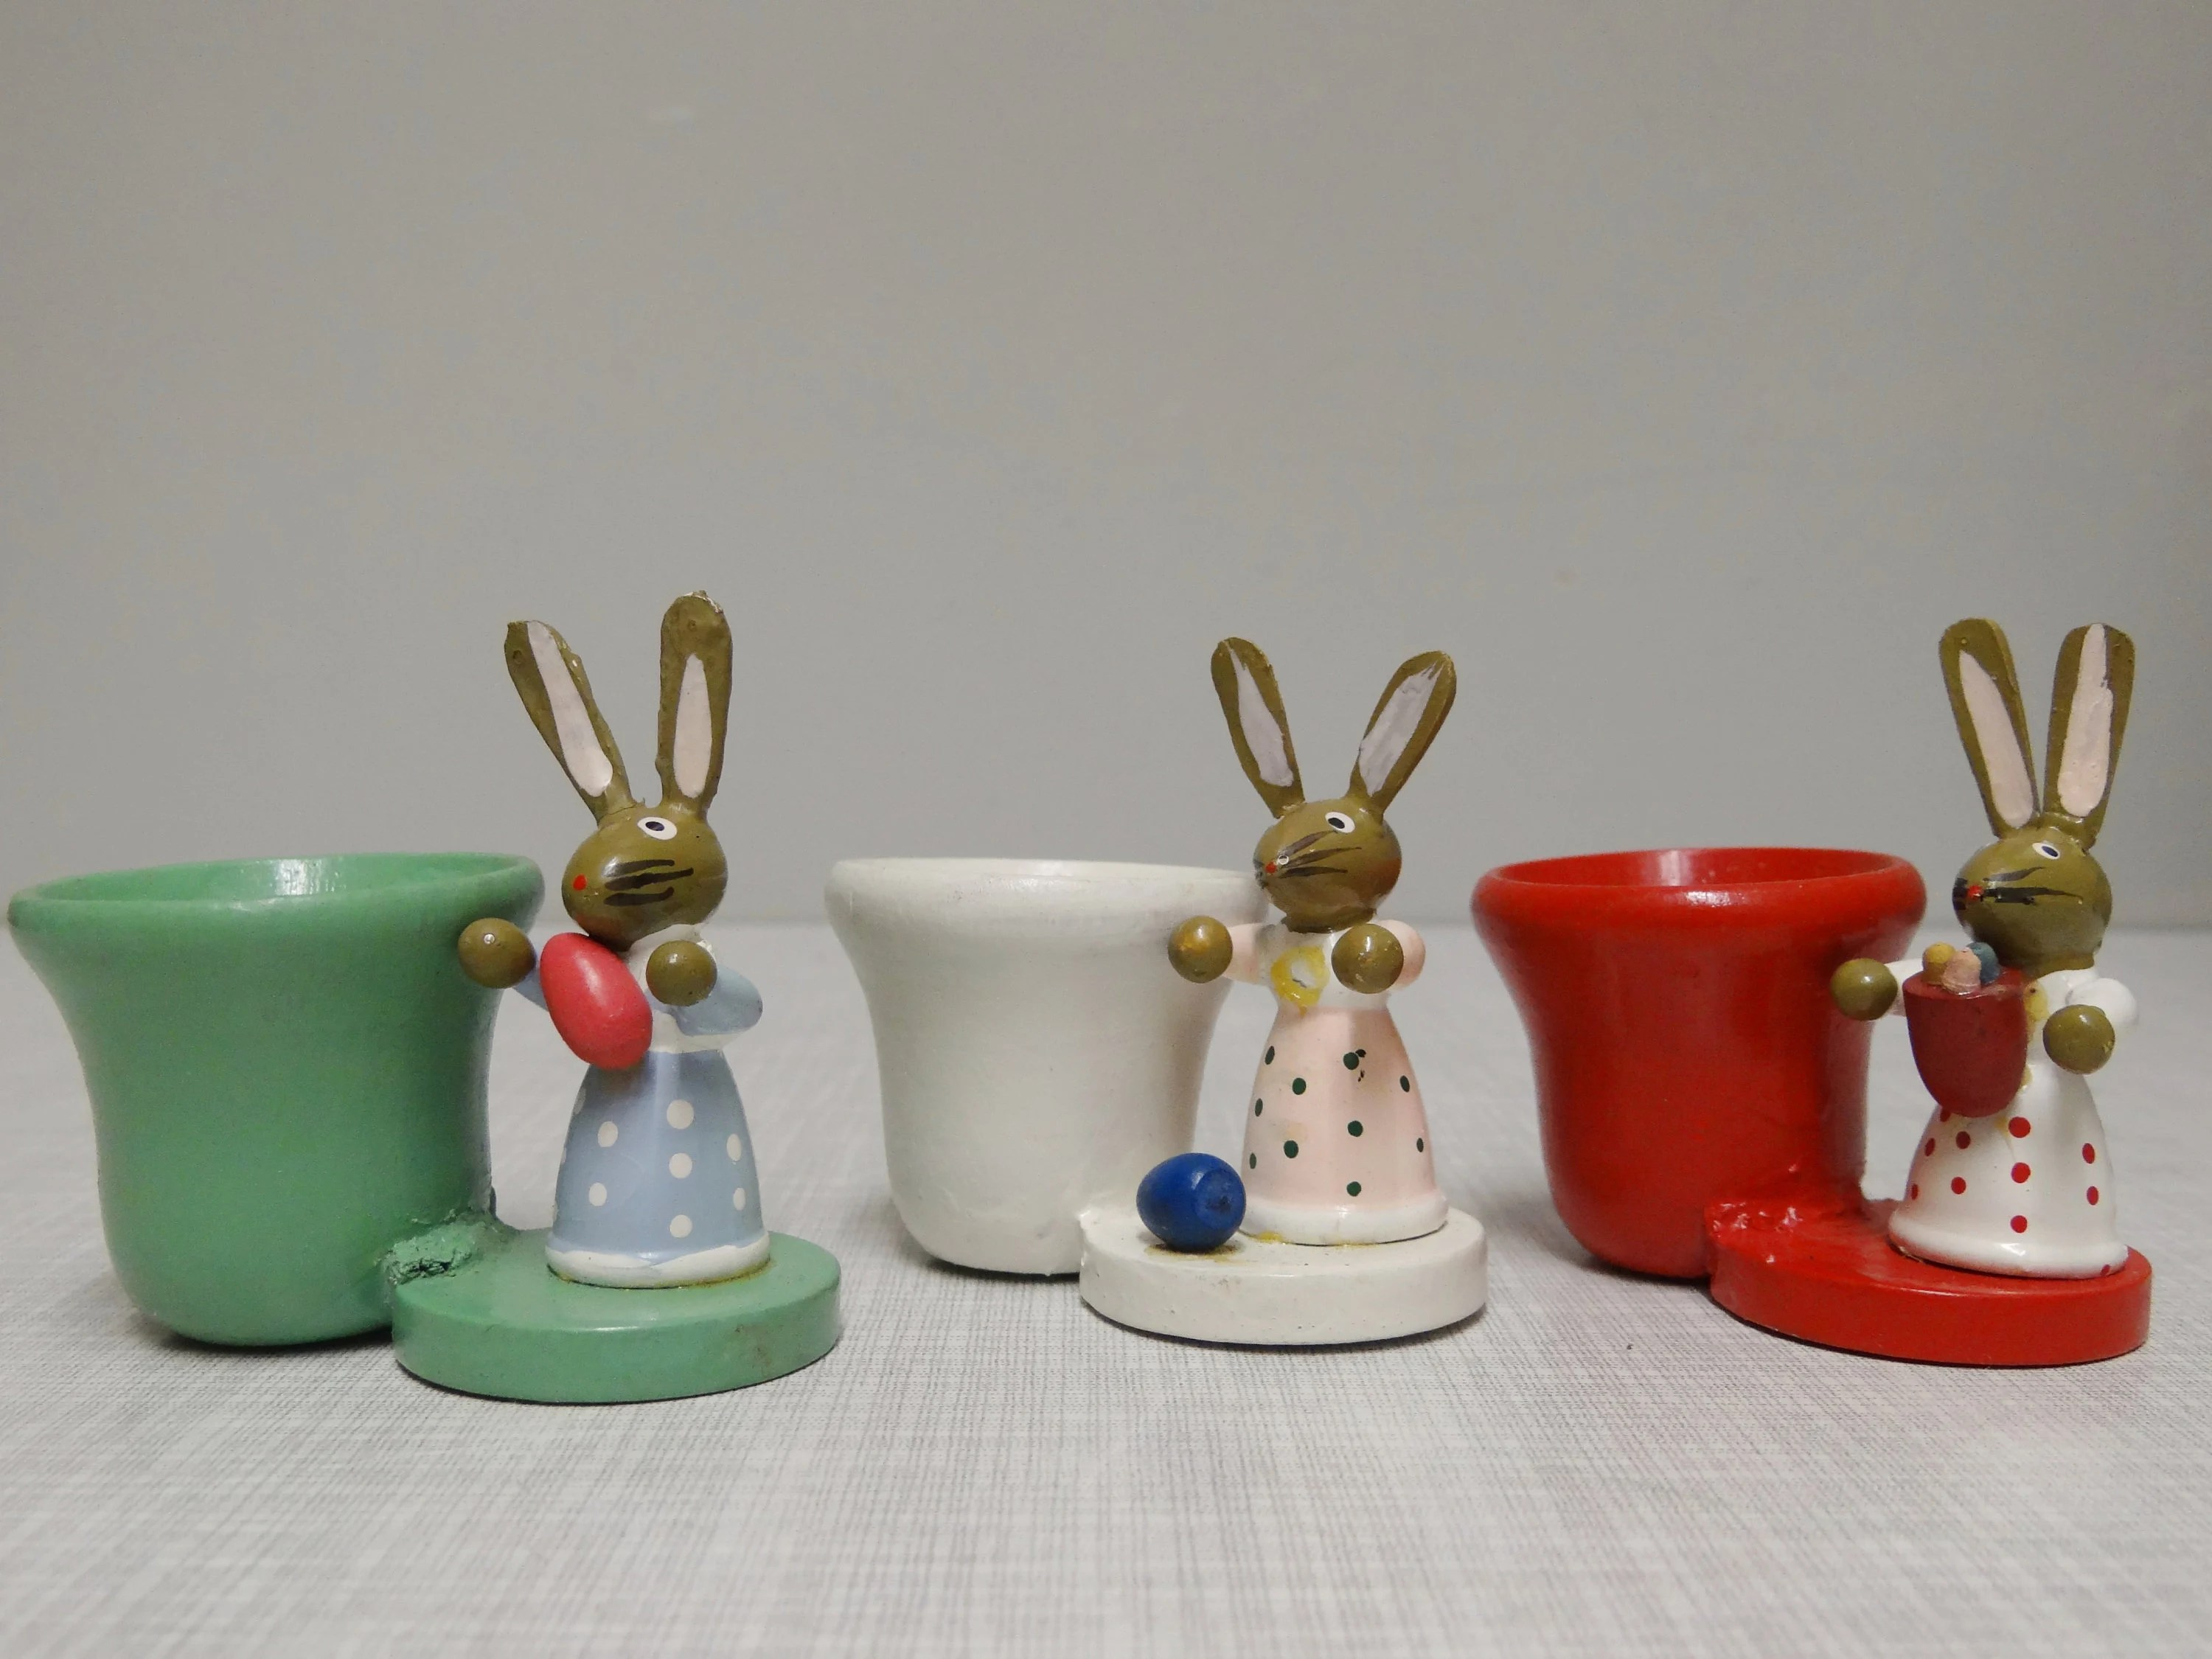 Wohnzimmeruhr Vintage 3 Easter Egg Cups Ore Mountains Ddr R Gahlenz 70s Vintage Easter Decoration Eggholder